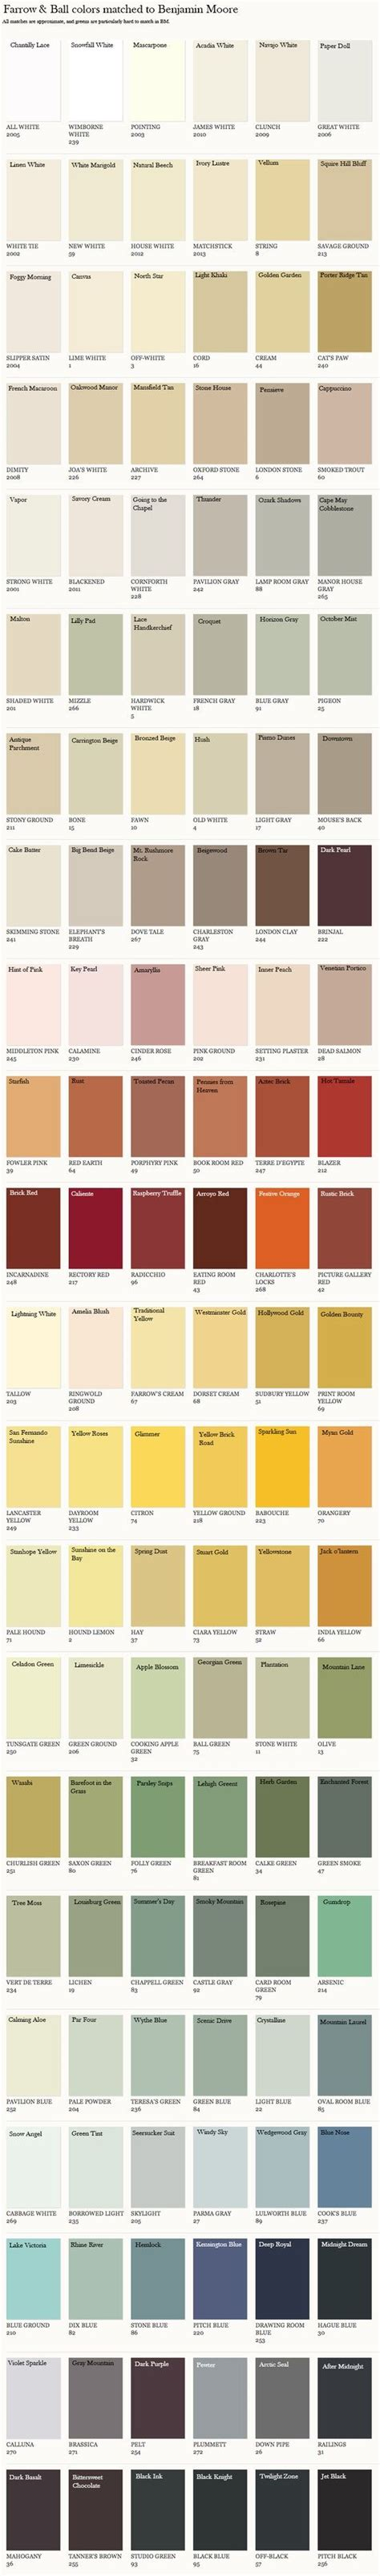 farrow paint colors matched to benjamin colors everything is approximate and f